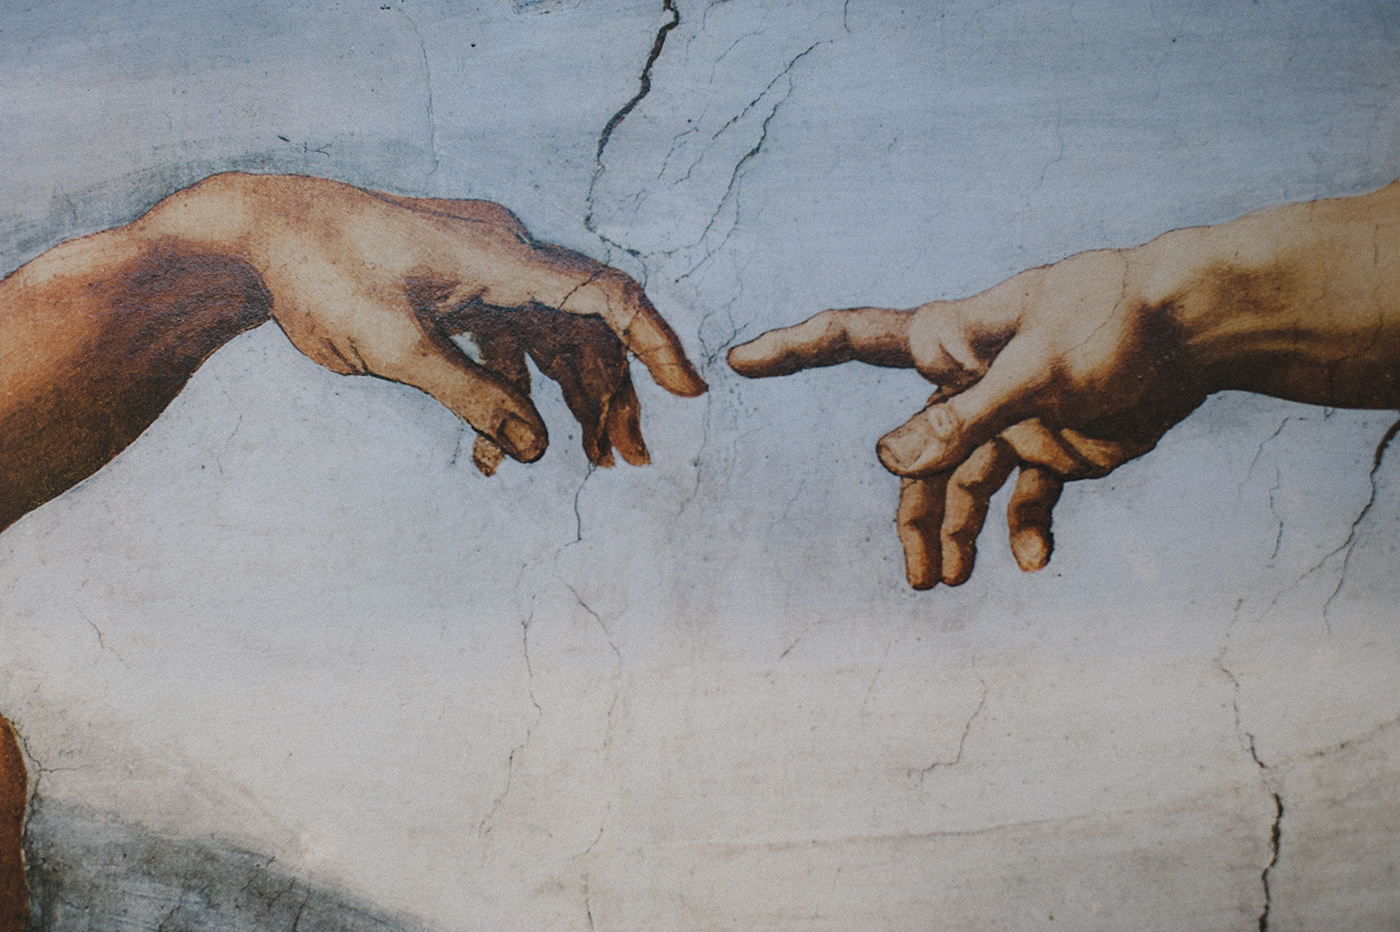 Man's hand on left, God's on right.  I love the symbolism of God deliberately and wholeheartedly reaching for us while we often idly and leisurely reach for Him.  Lots of deep thoughts on this one.